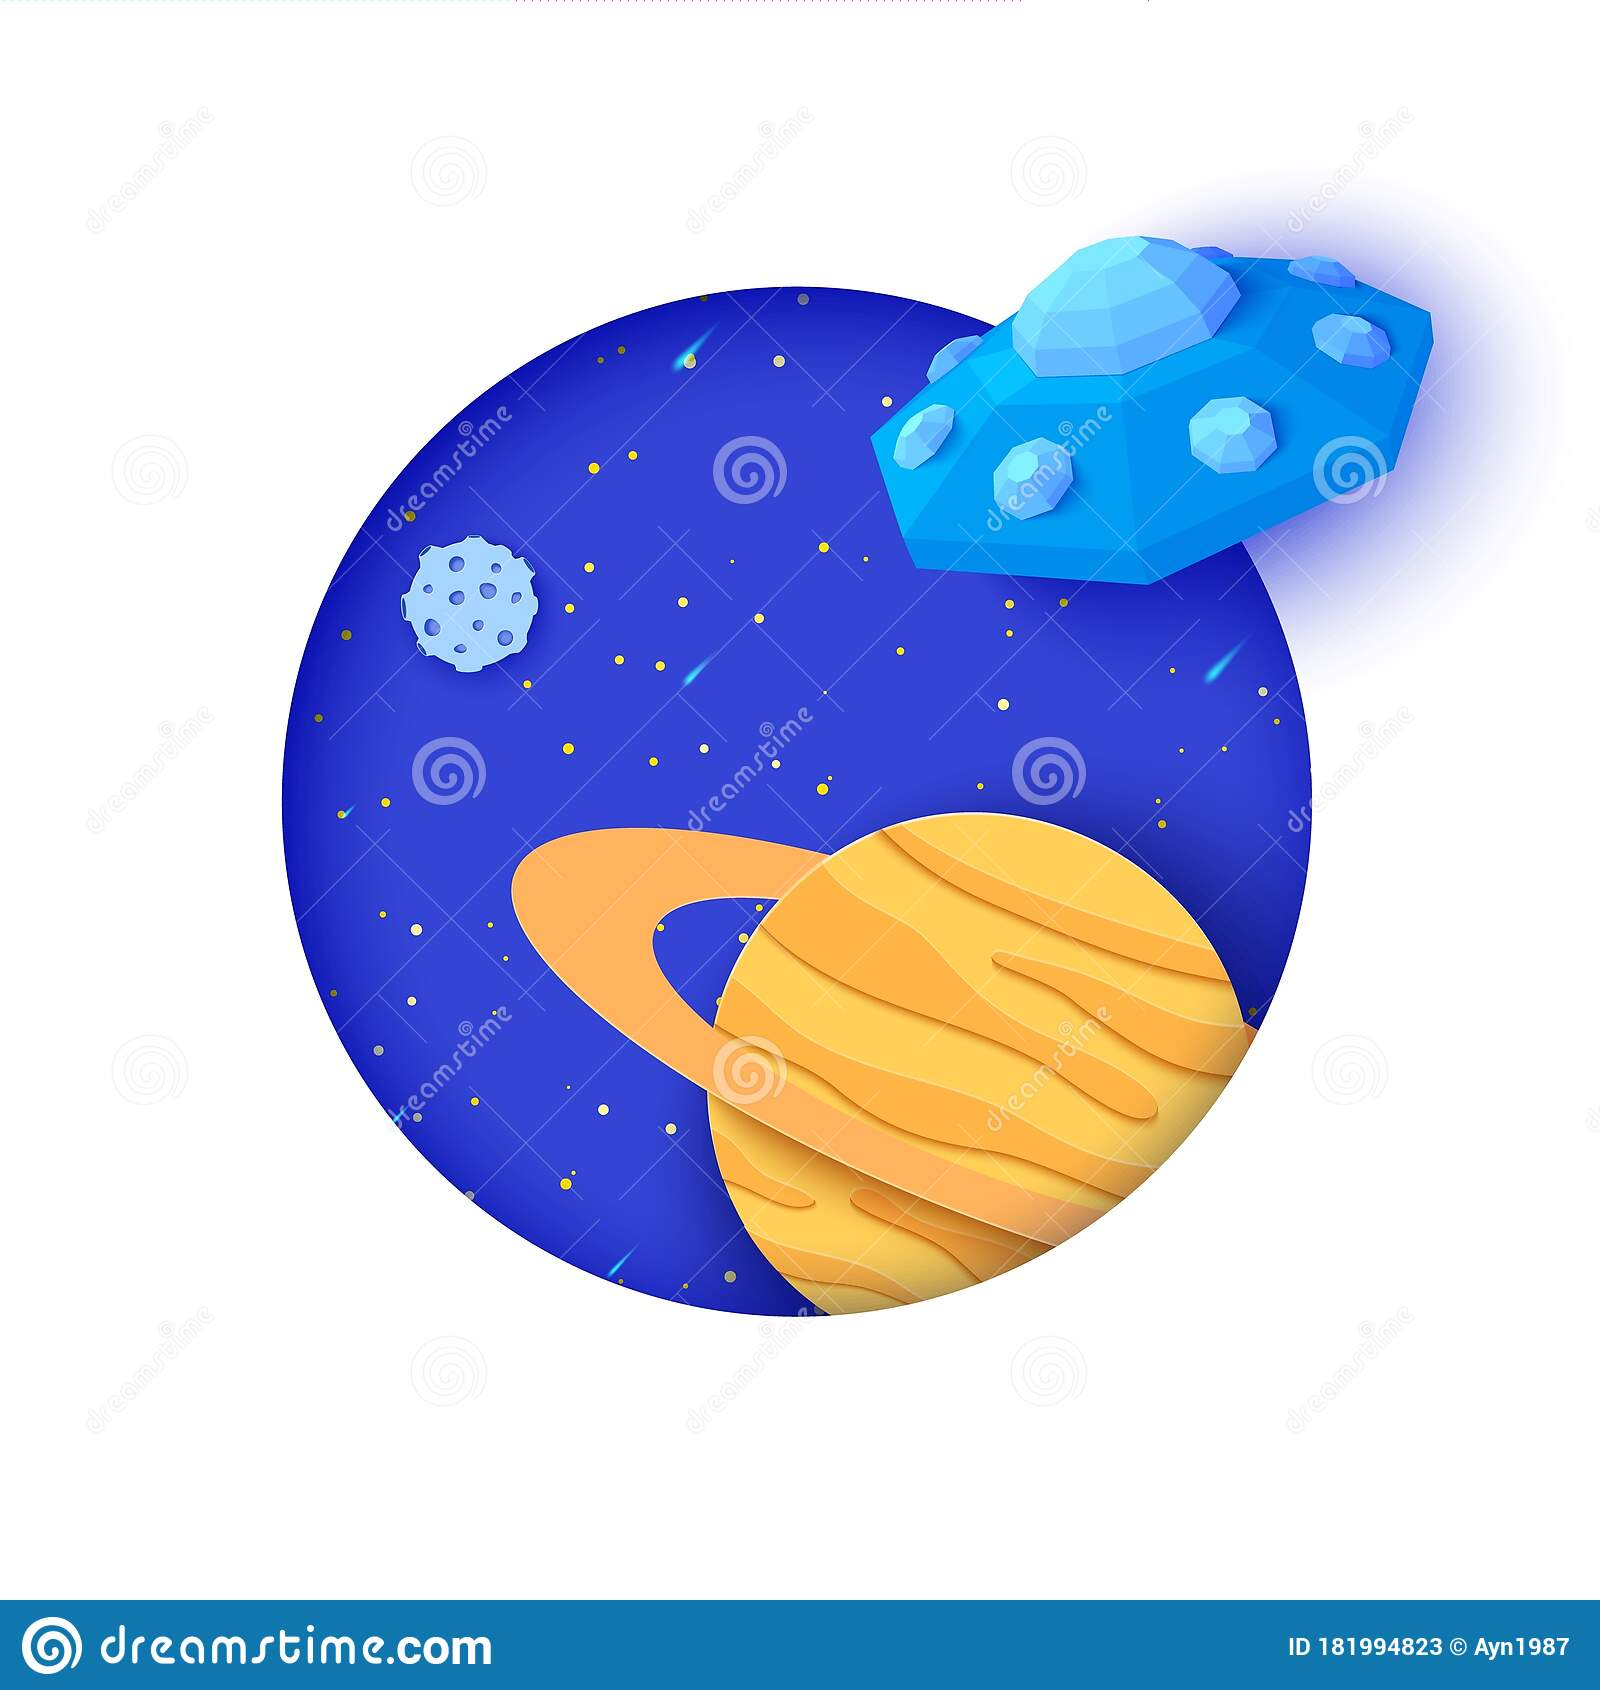 Flying Saucer Flying In Space In Paper Cut Style Galaxy Landscape 3d Craft Background With White Round Frame And Starry Stock Vector Illustration Of Polygon Cartoon 181994823